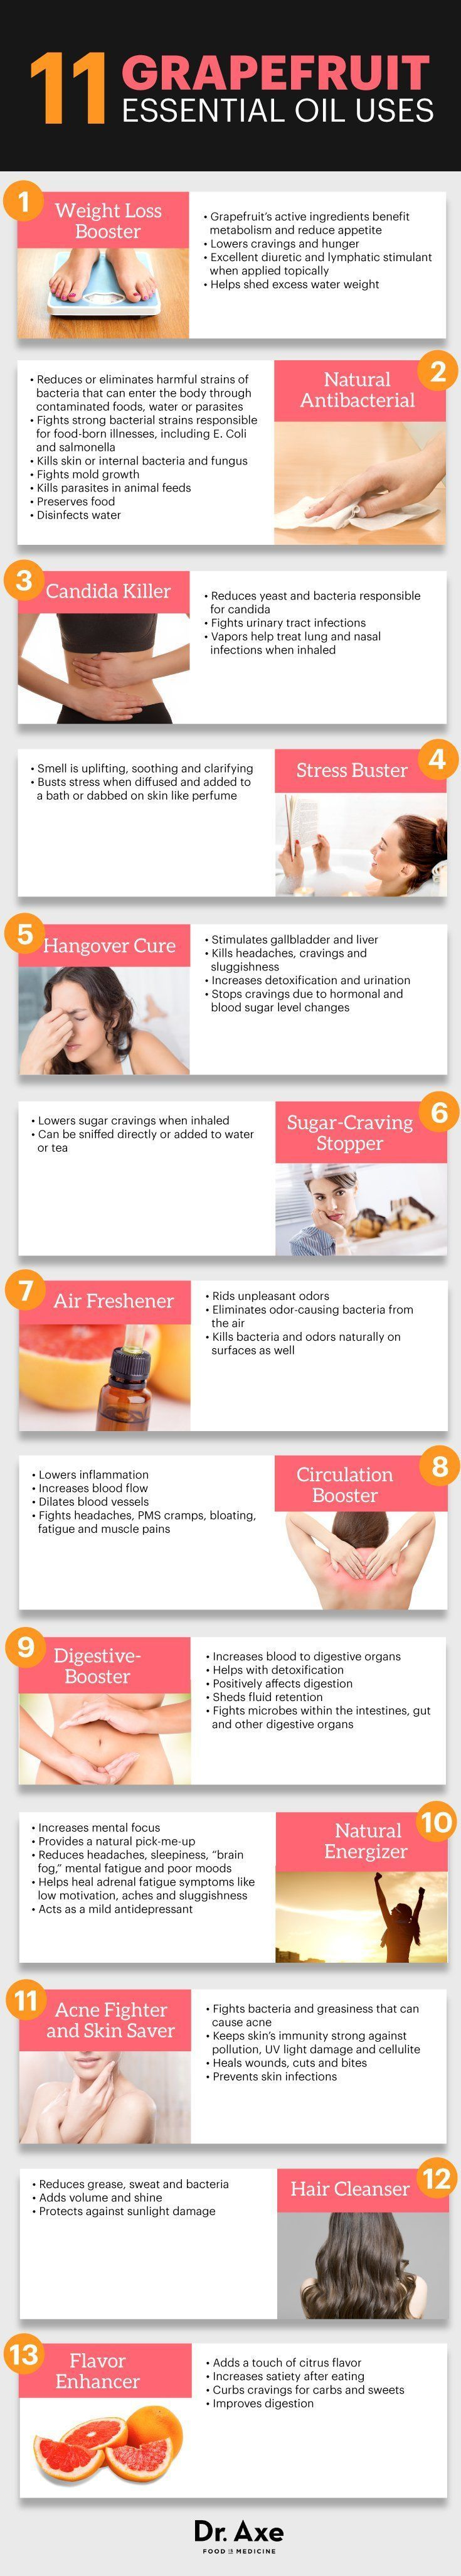 Lovely  13 Grapefruit Essential Oil Benefits — Starting with Weight Loss - Dr. Axe...